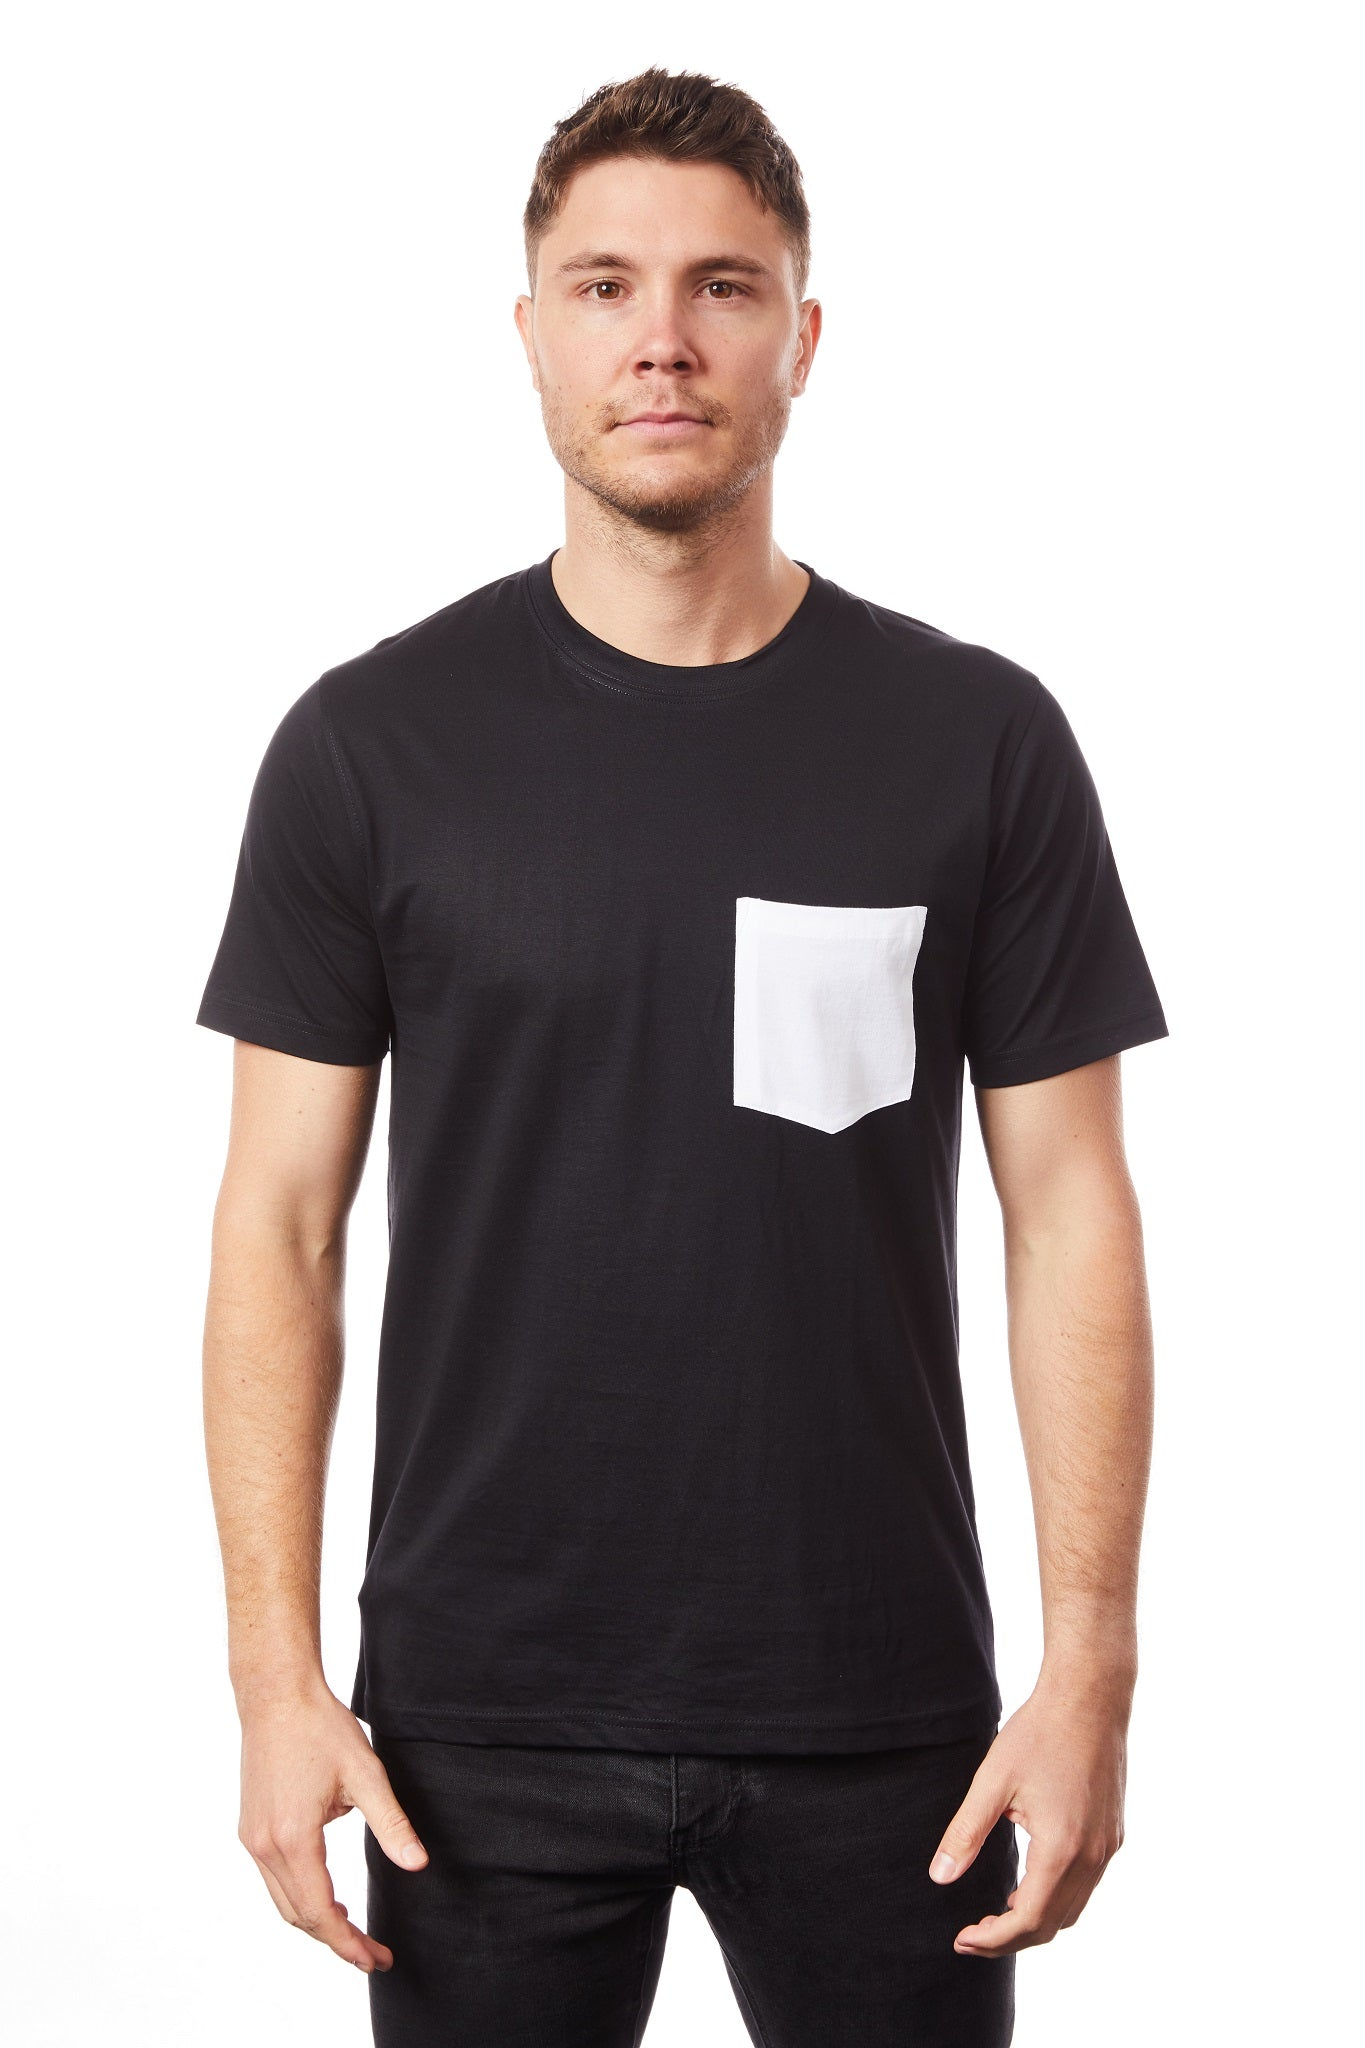 Tipsy Koala Men's Black Round Neck with White Pocket